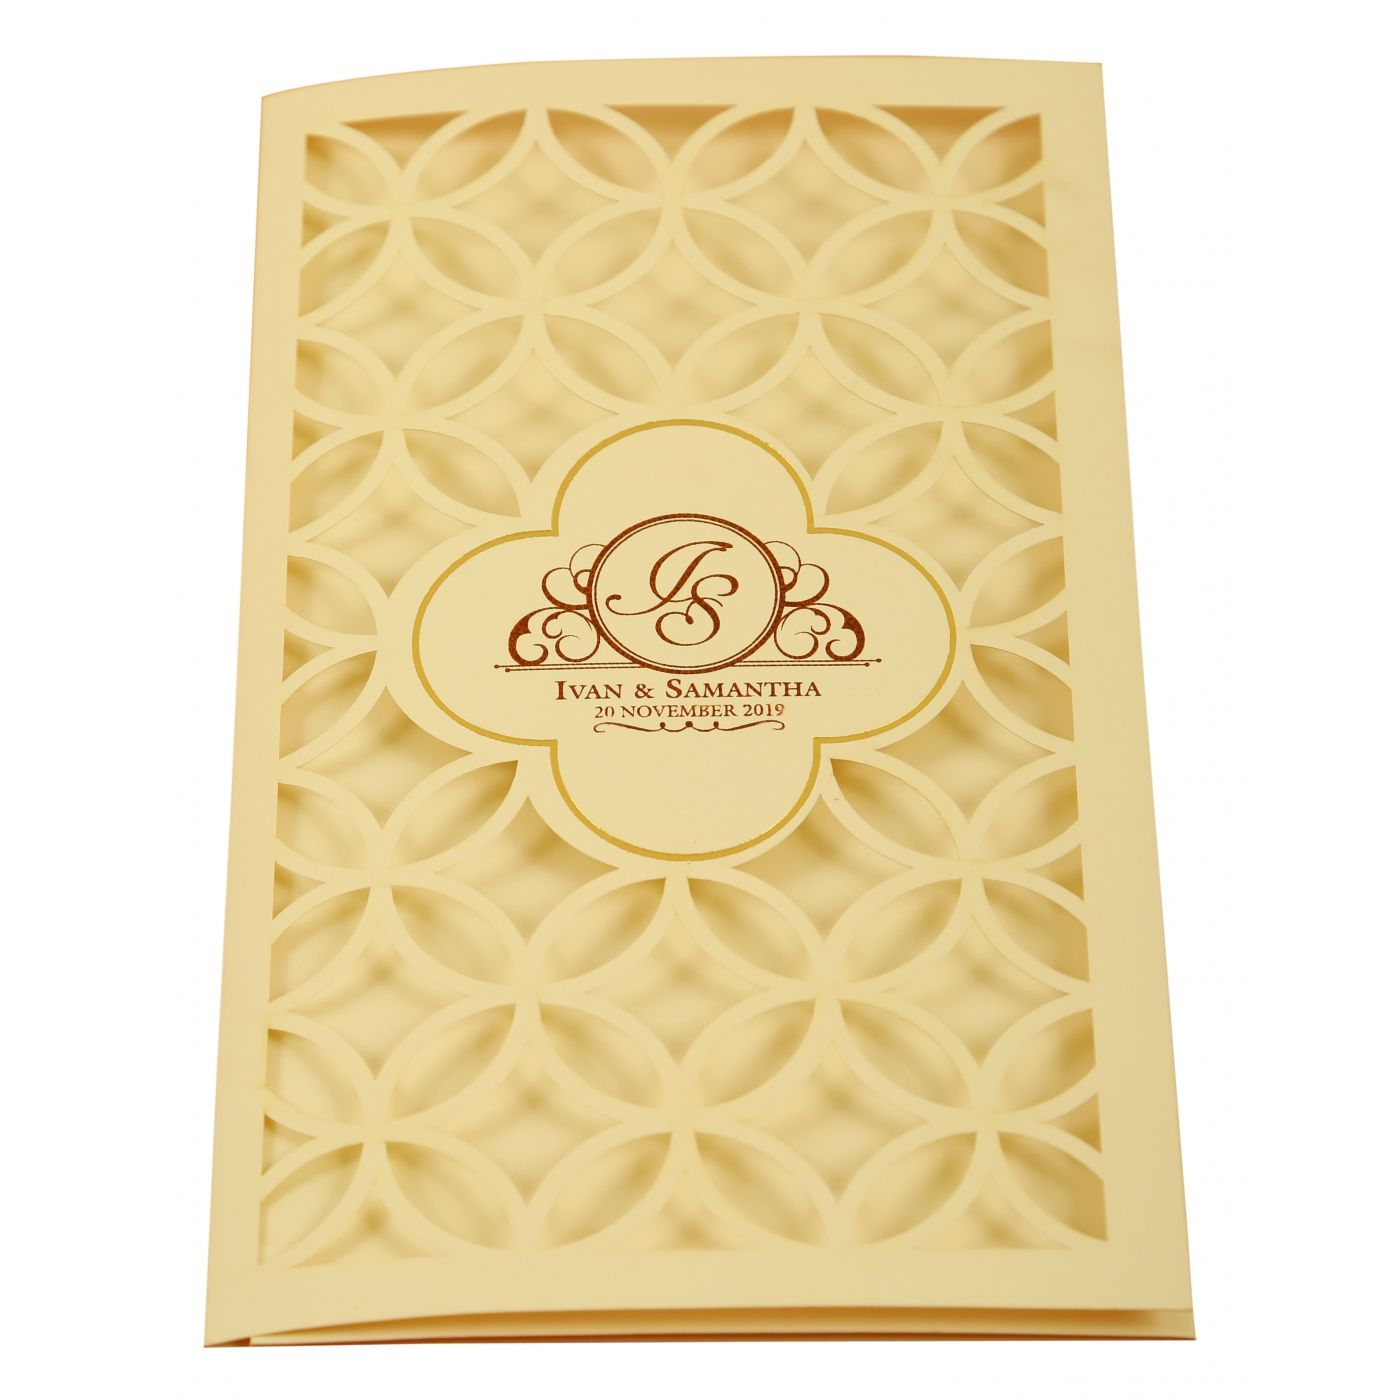 OFF-WHITE MATTE LASER CUT WEDDING INVITATION : CG-1911 - IndianWeddingCards